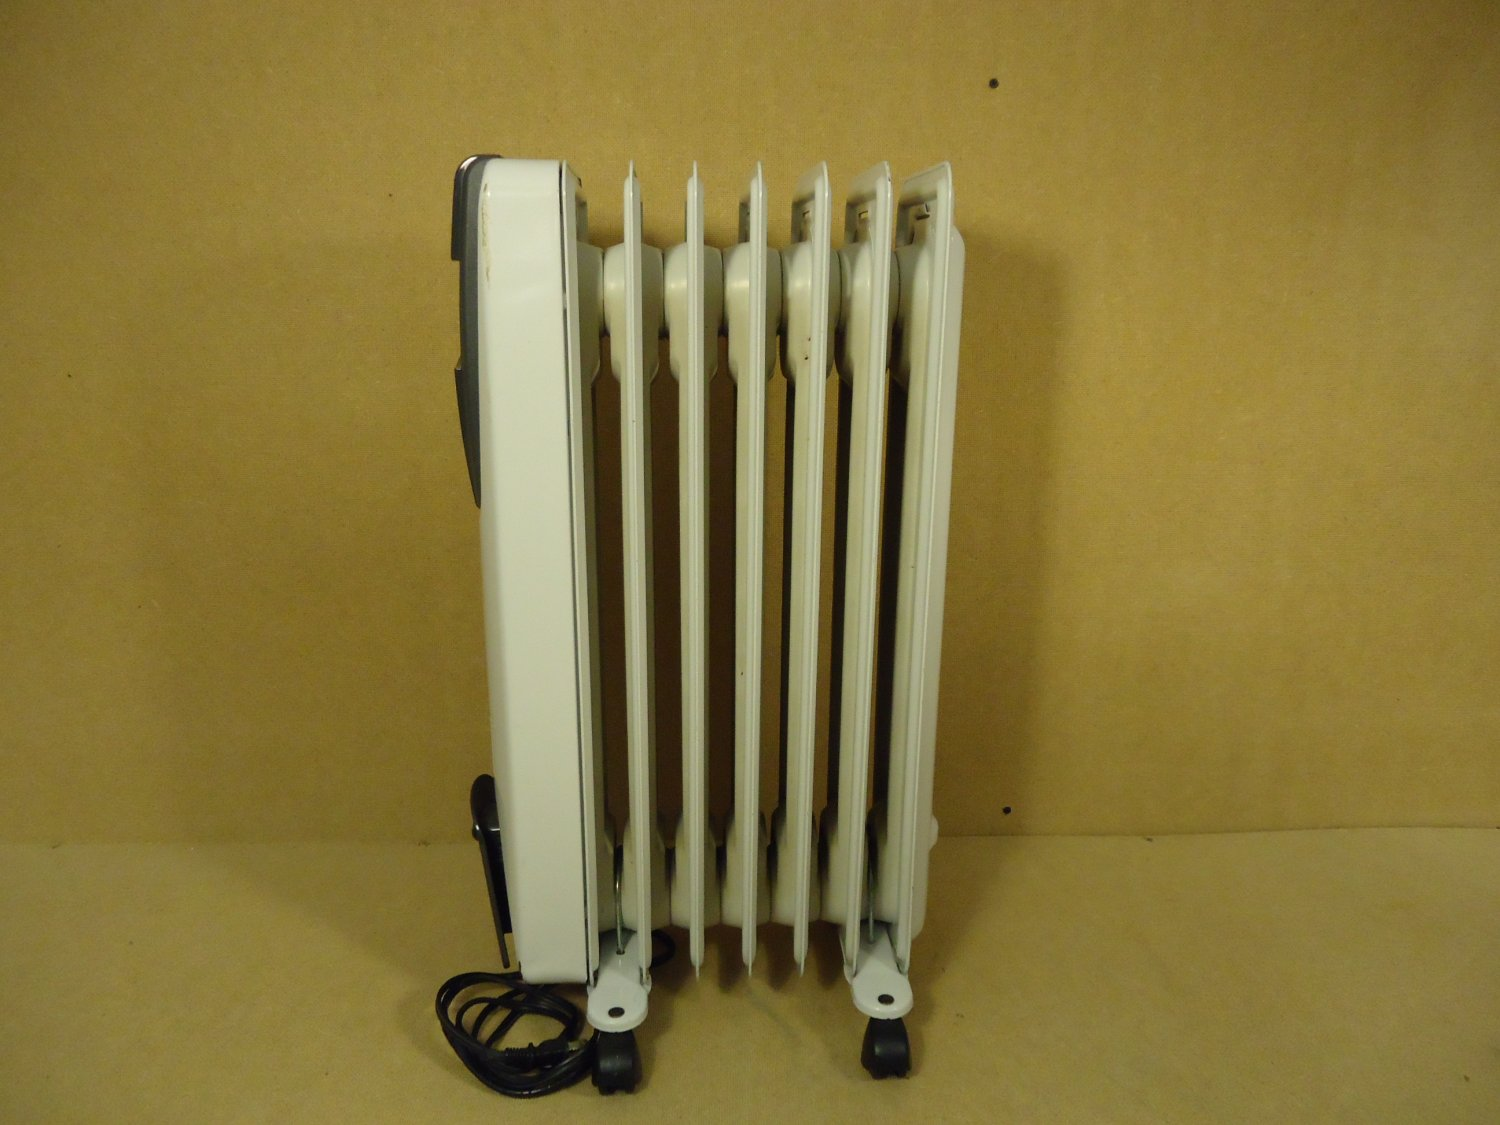 Delonghi SafeHeat Radiator Room Heater 25in x 13in x 10in Gray 6507L Metal